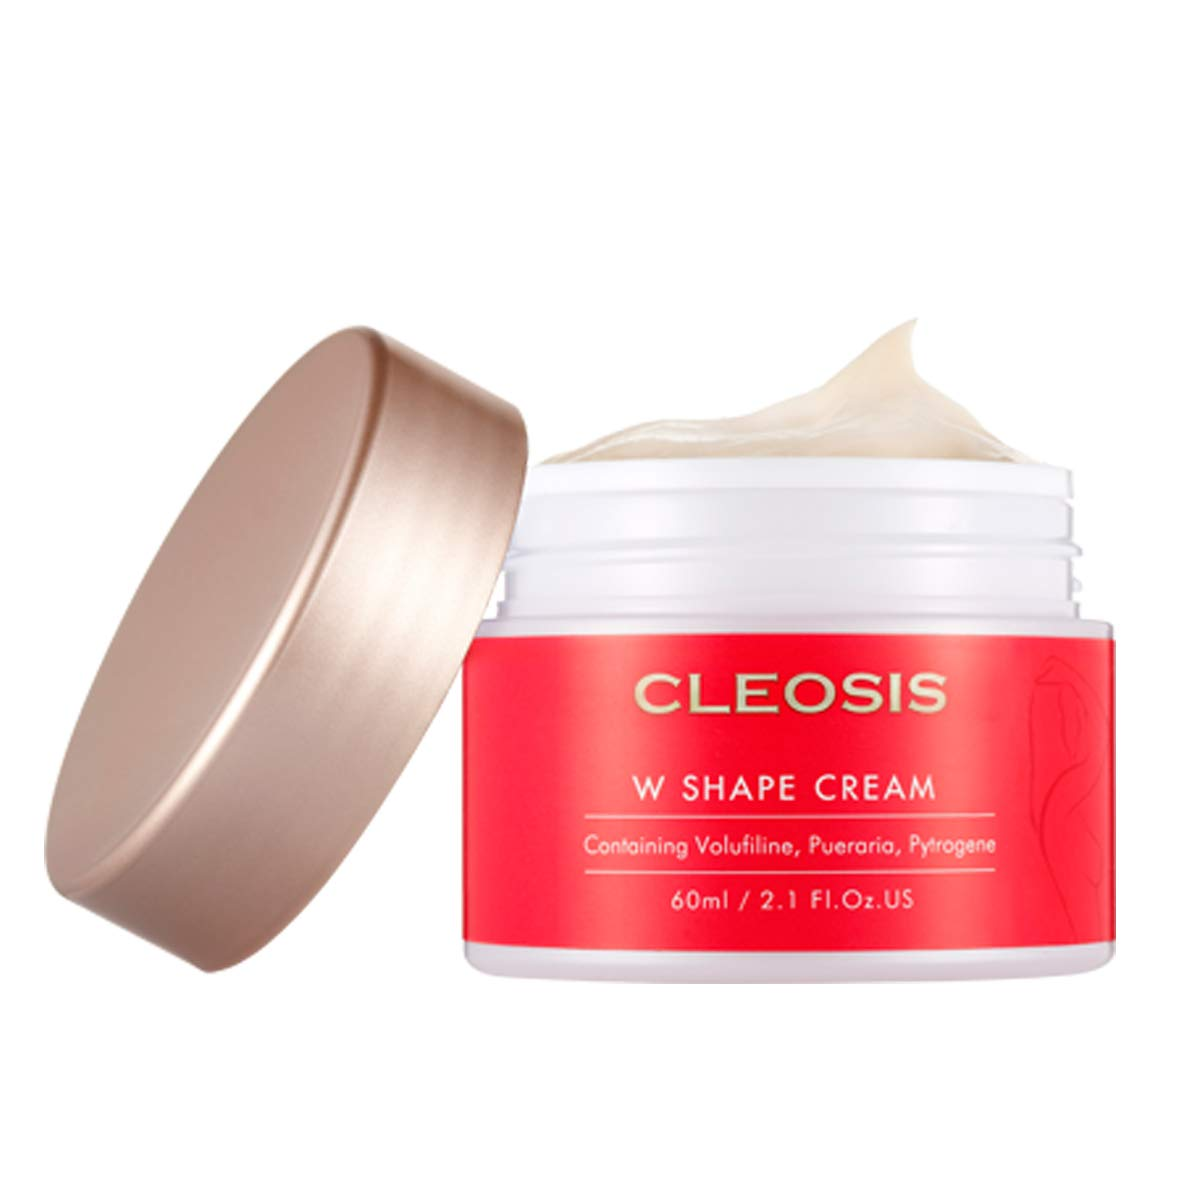 Amazon.com : CLEOSIS W Shape Cream 60ml / Breast Enlargement, Enhancement,  Paraben Free : Beauty